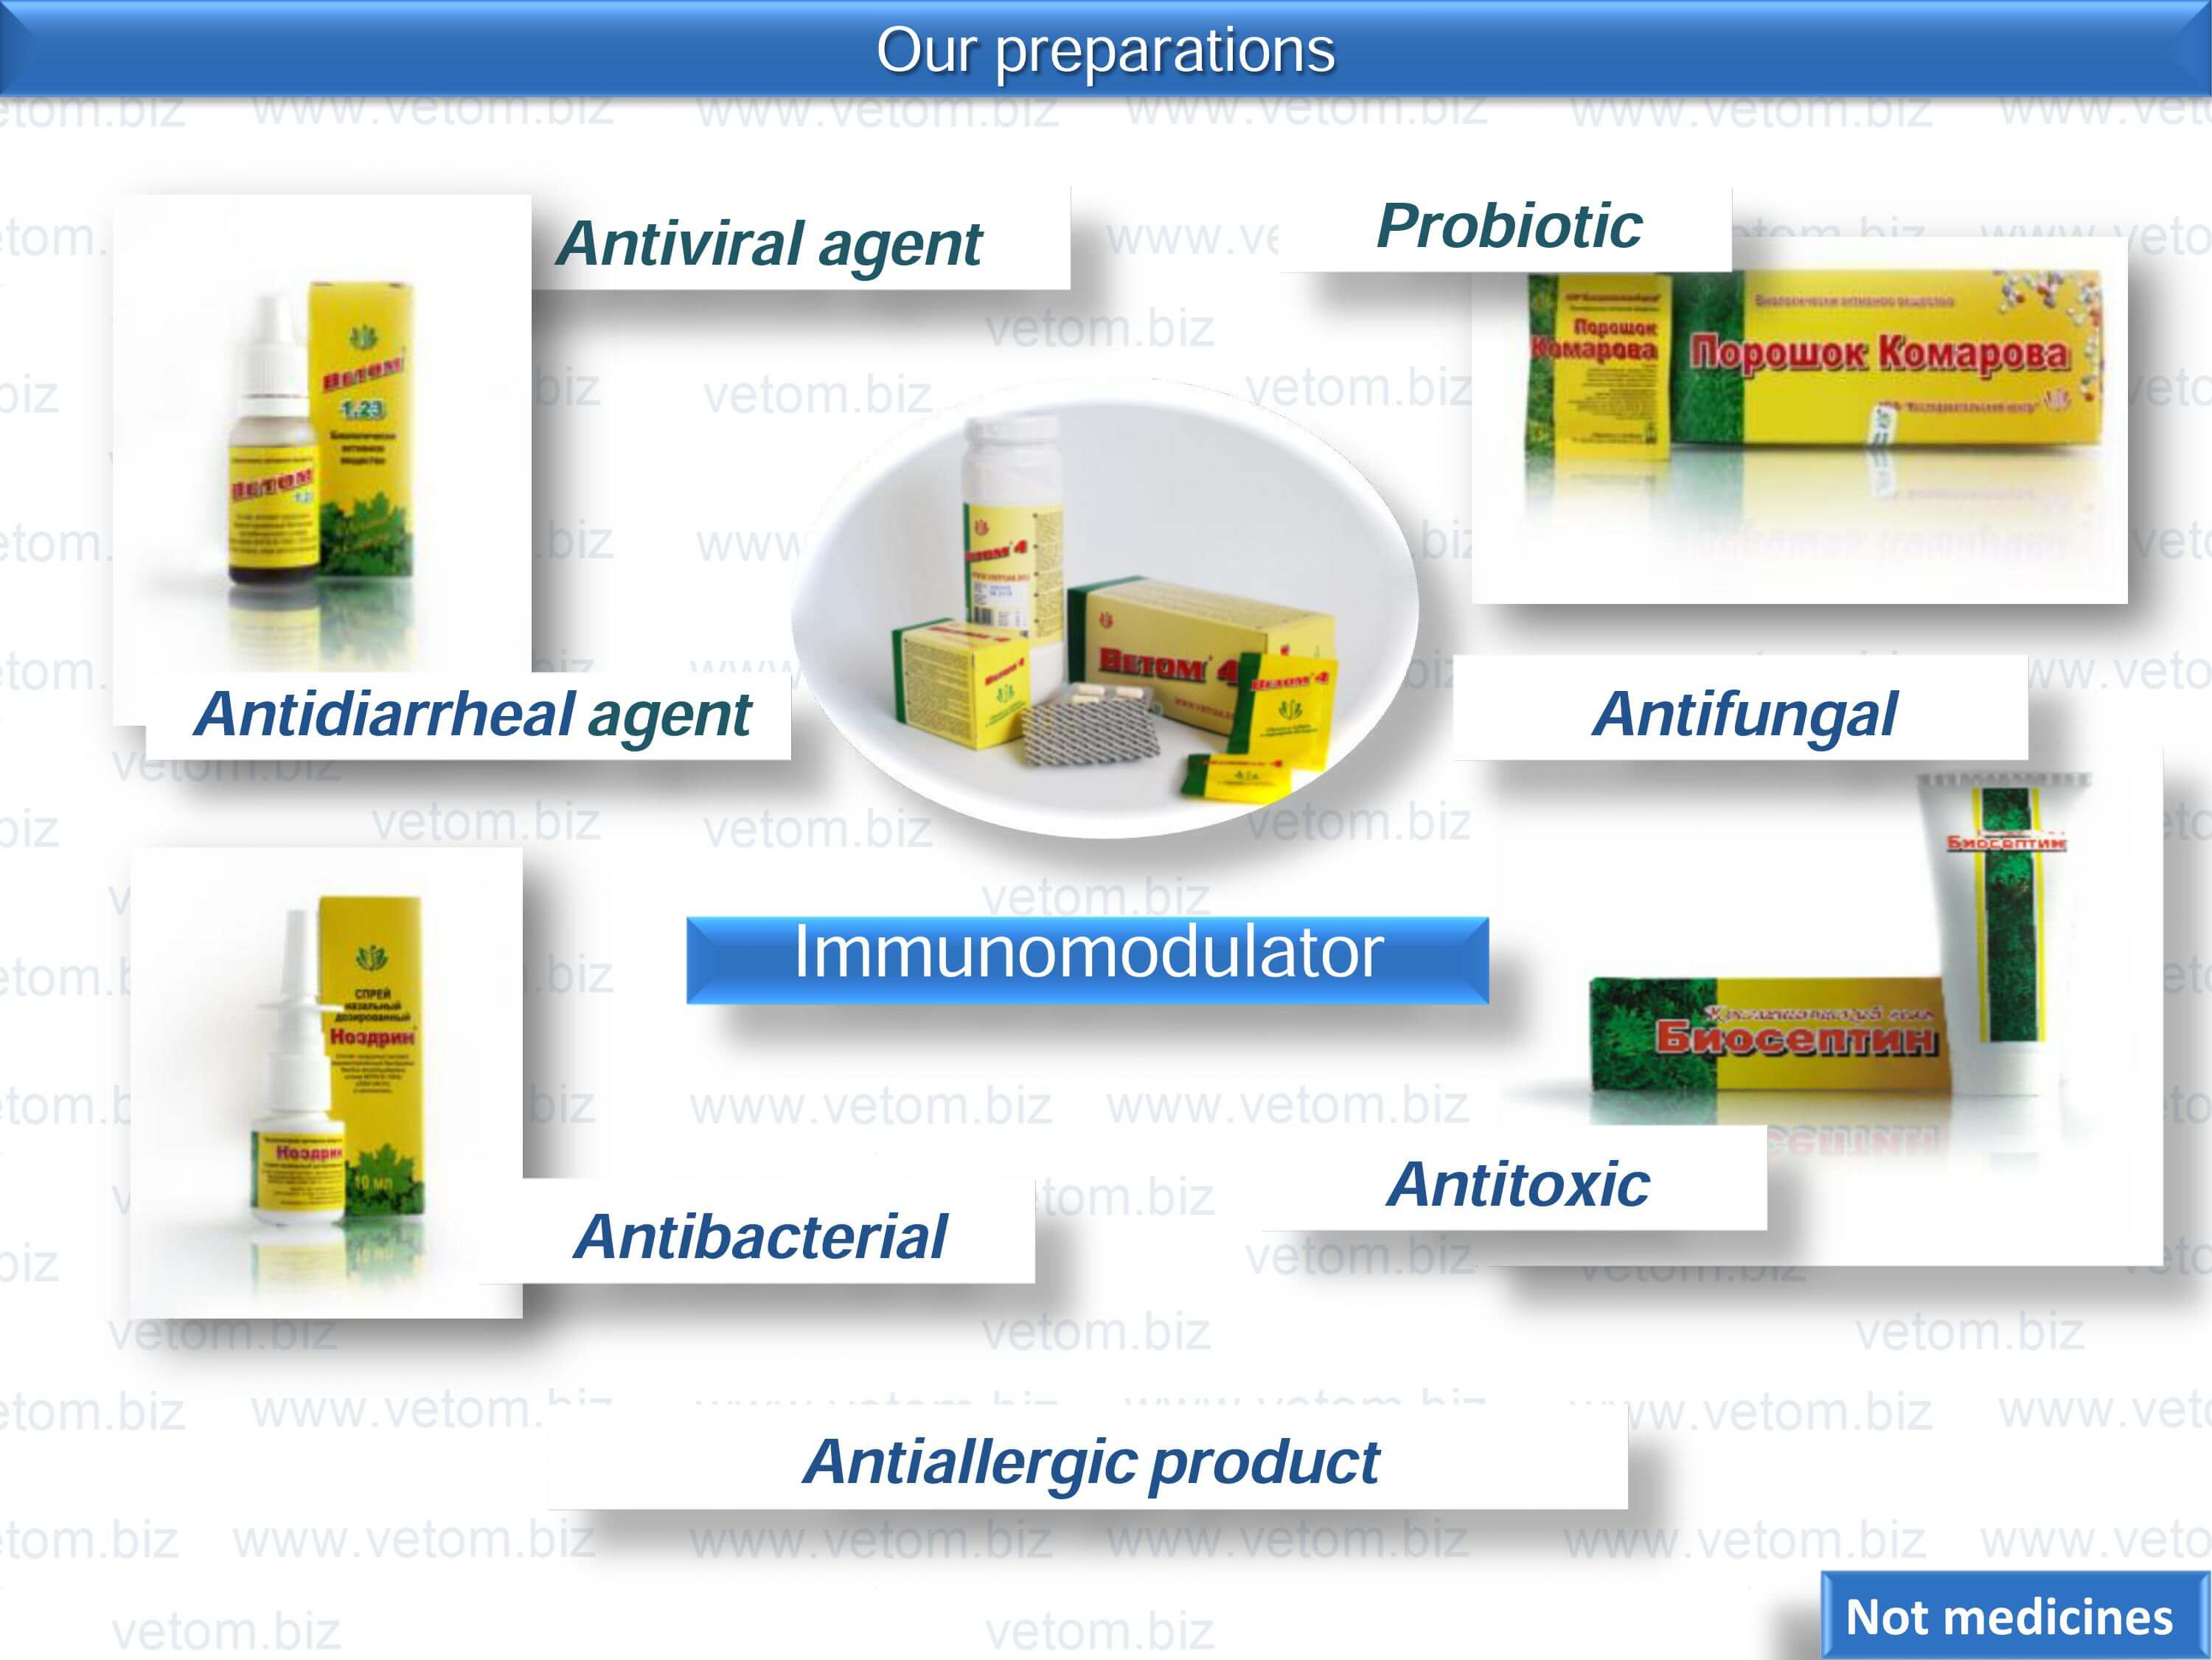 Our preparations have probiotic, antifungal, antibacterial, antitoxic and are  antiviral agent, antidiarrheal agent, antiallergic product, immunomodulator